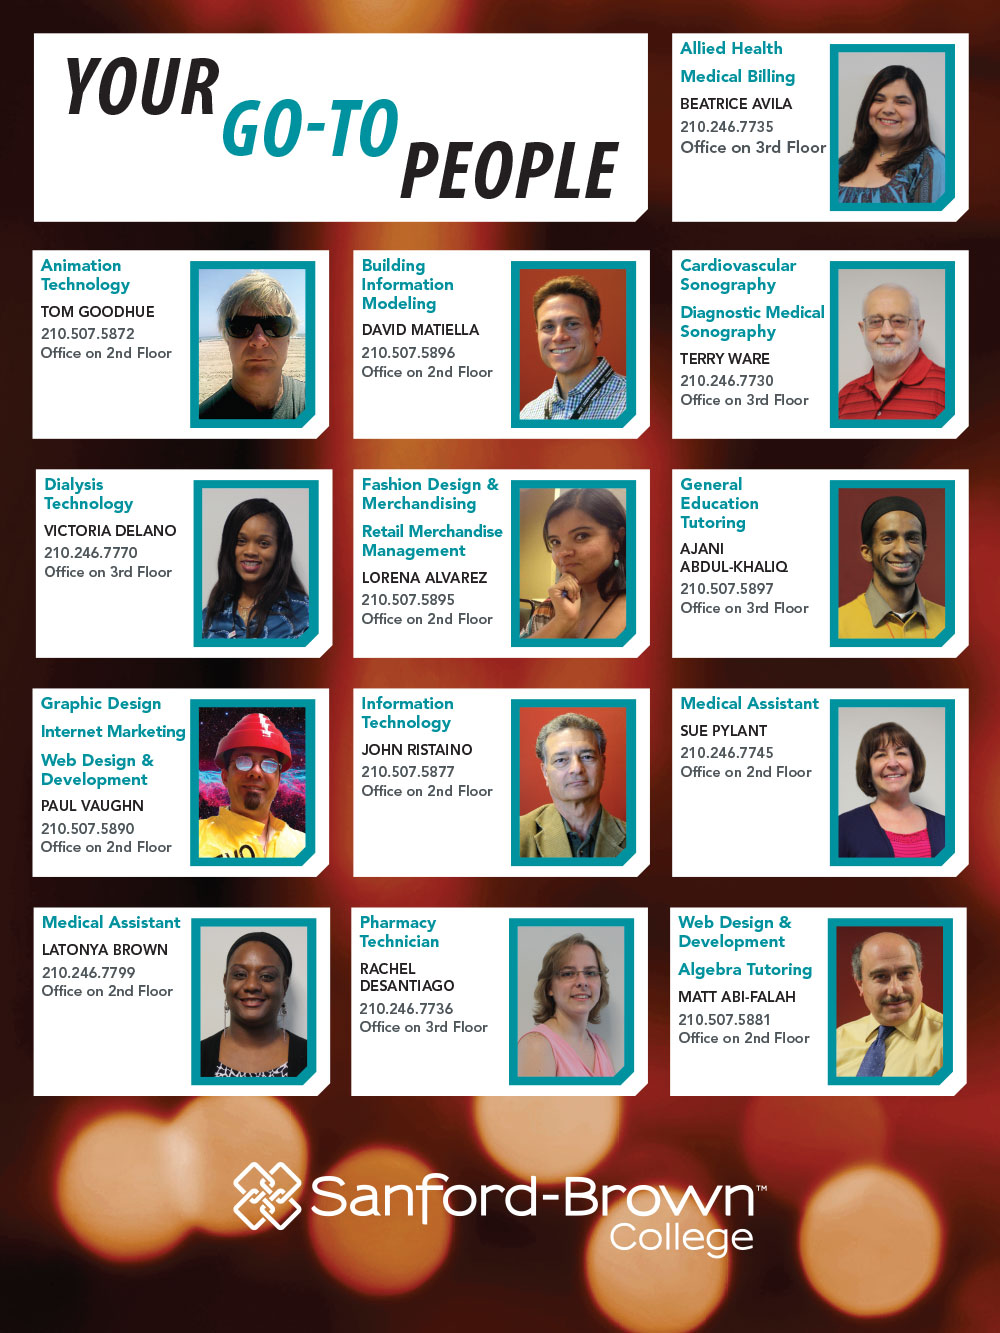 Go-To People Poster | Sanford-Brown College